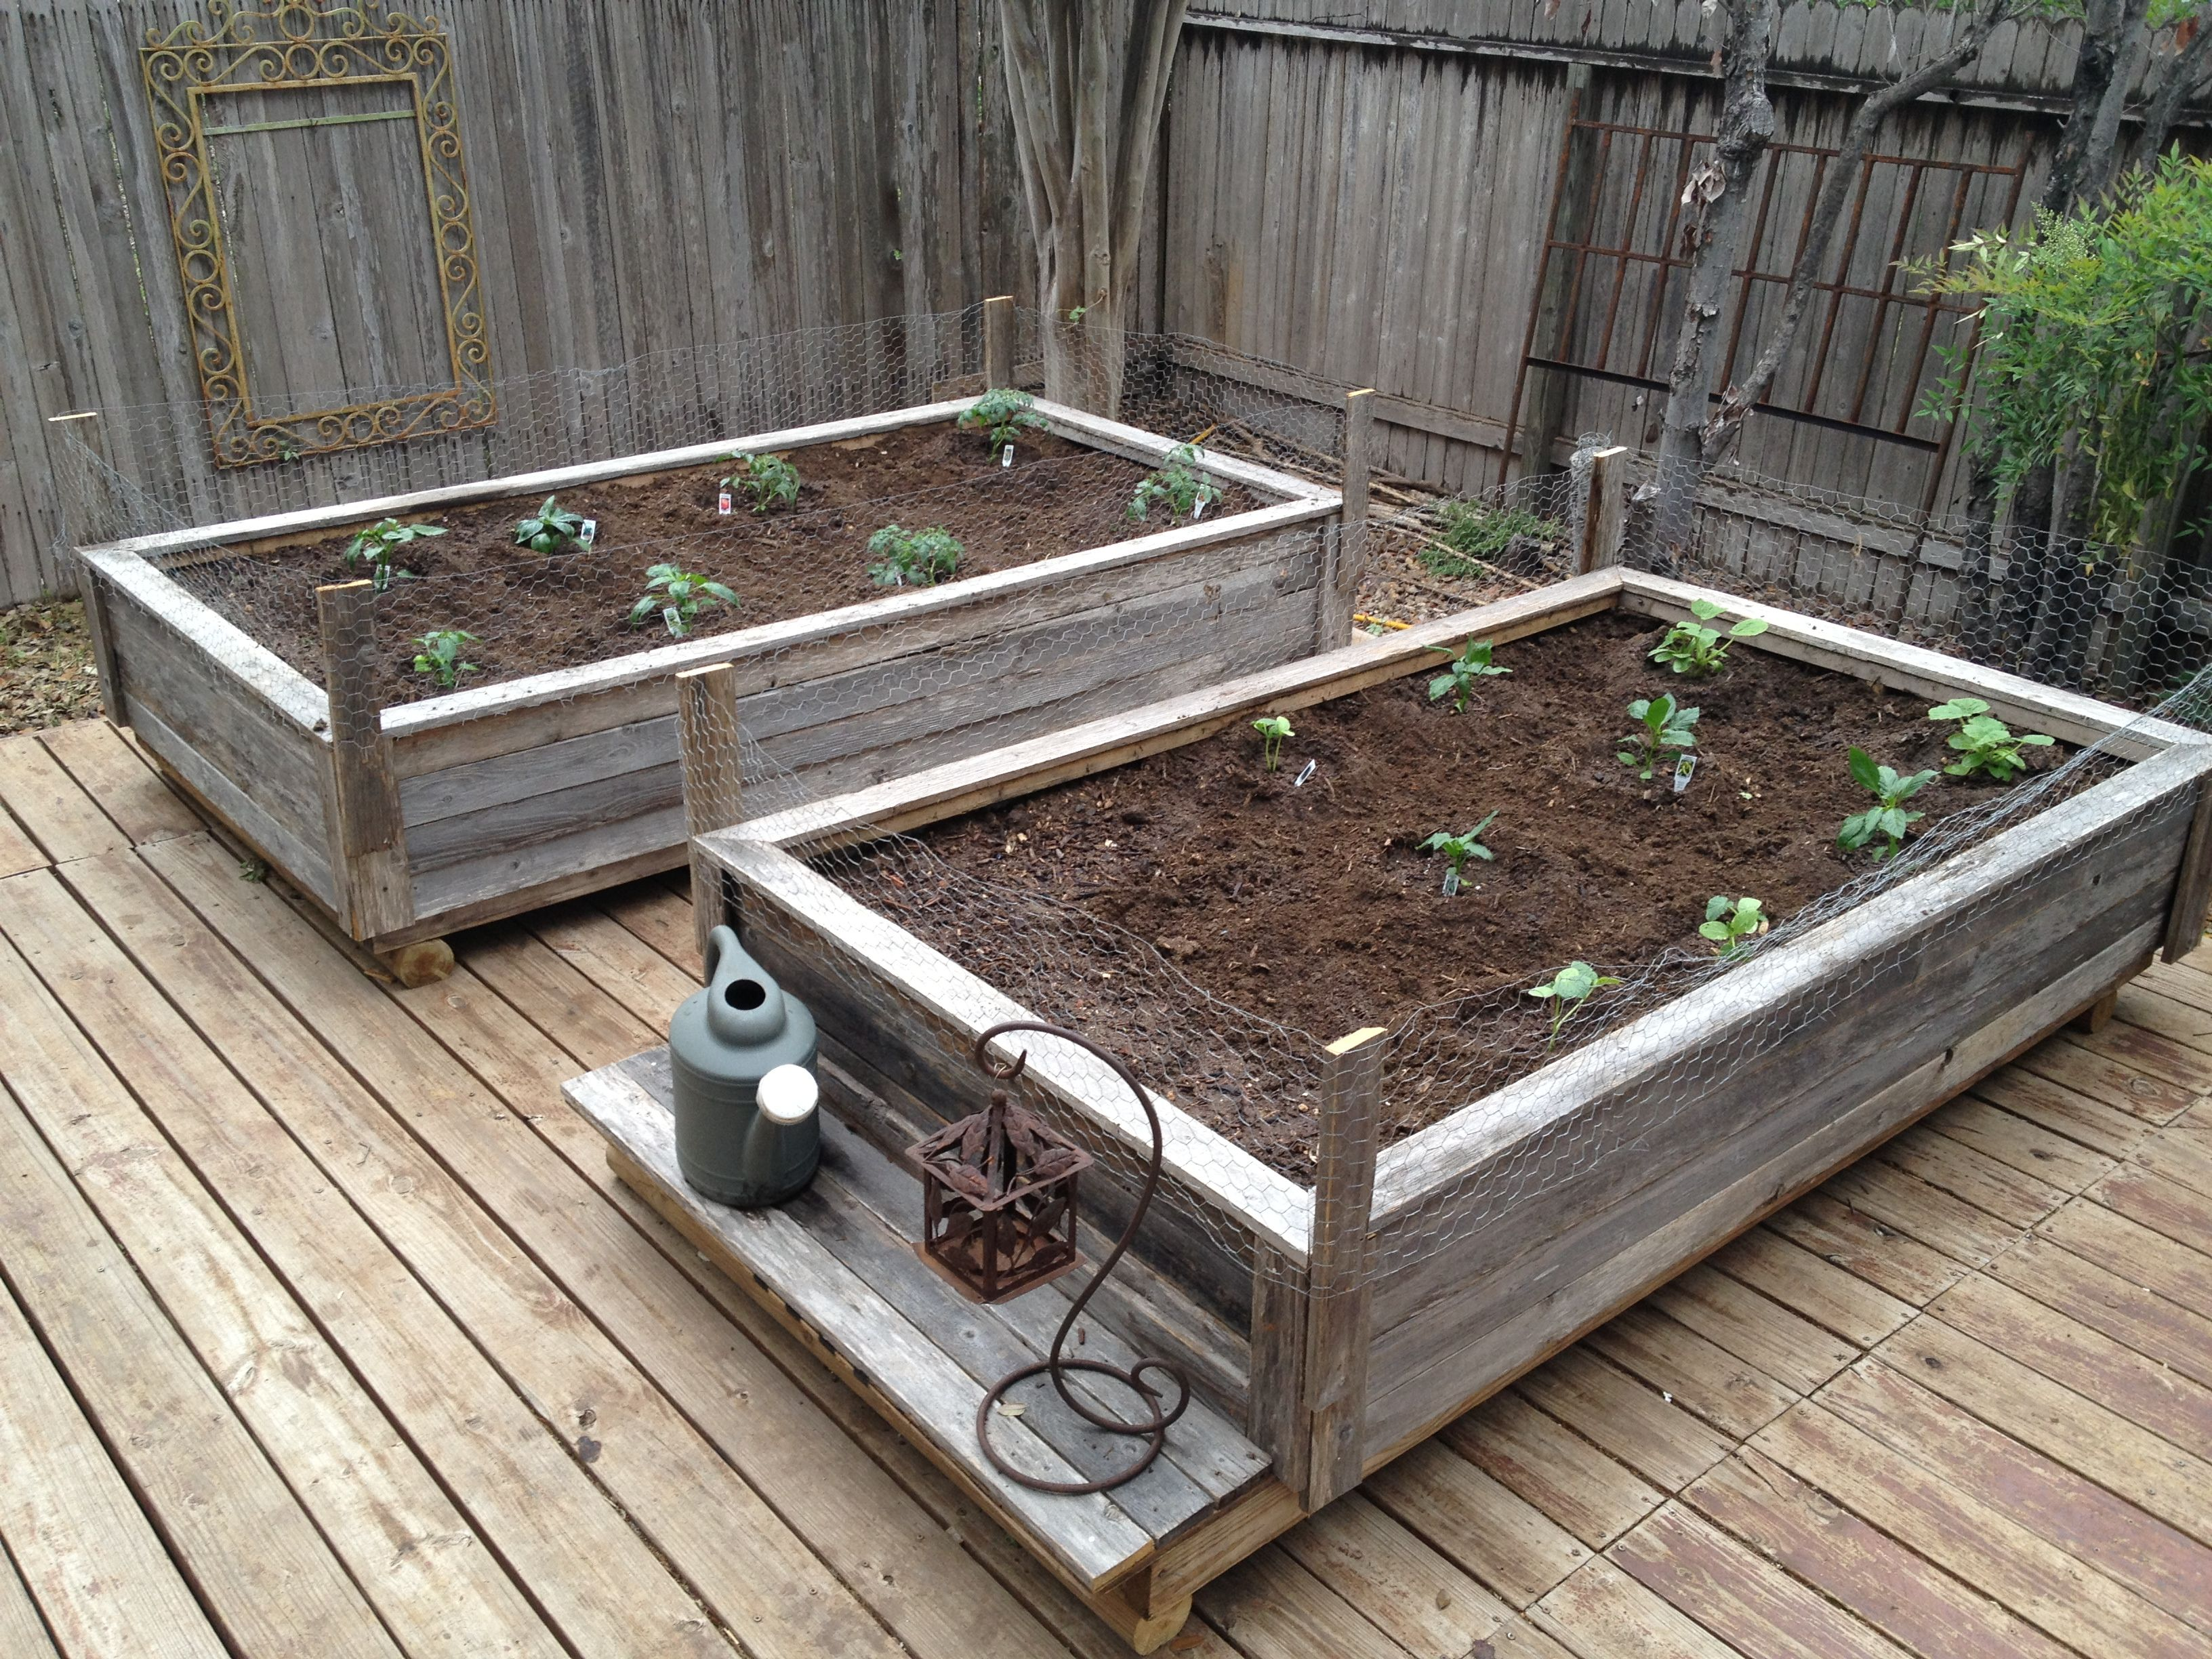 Raised garden beds made from old fence wood. (With images